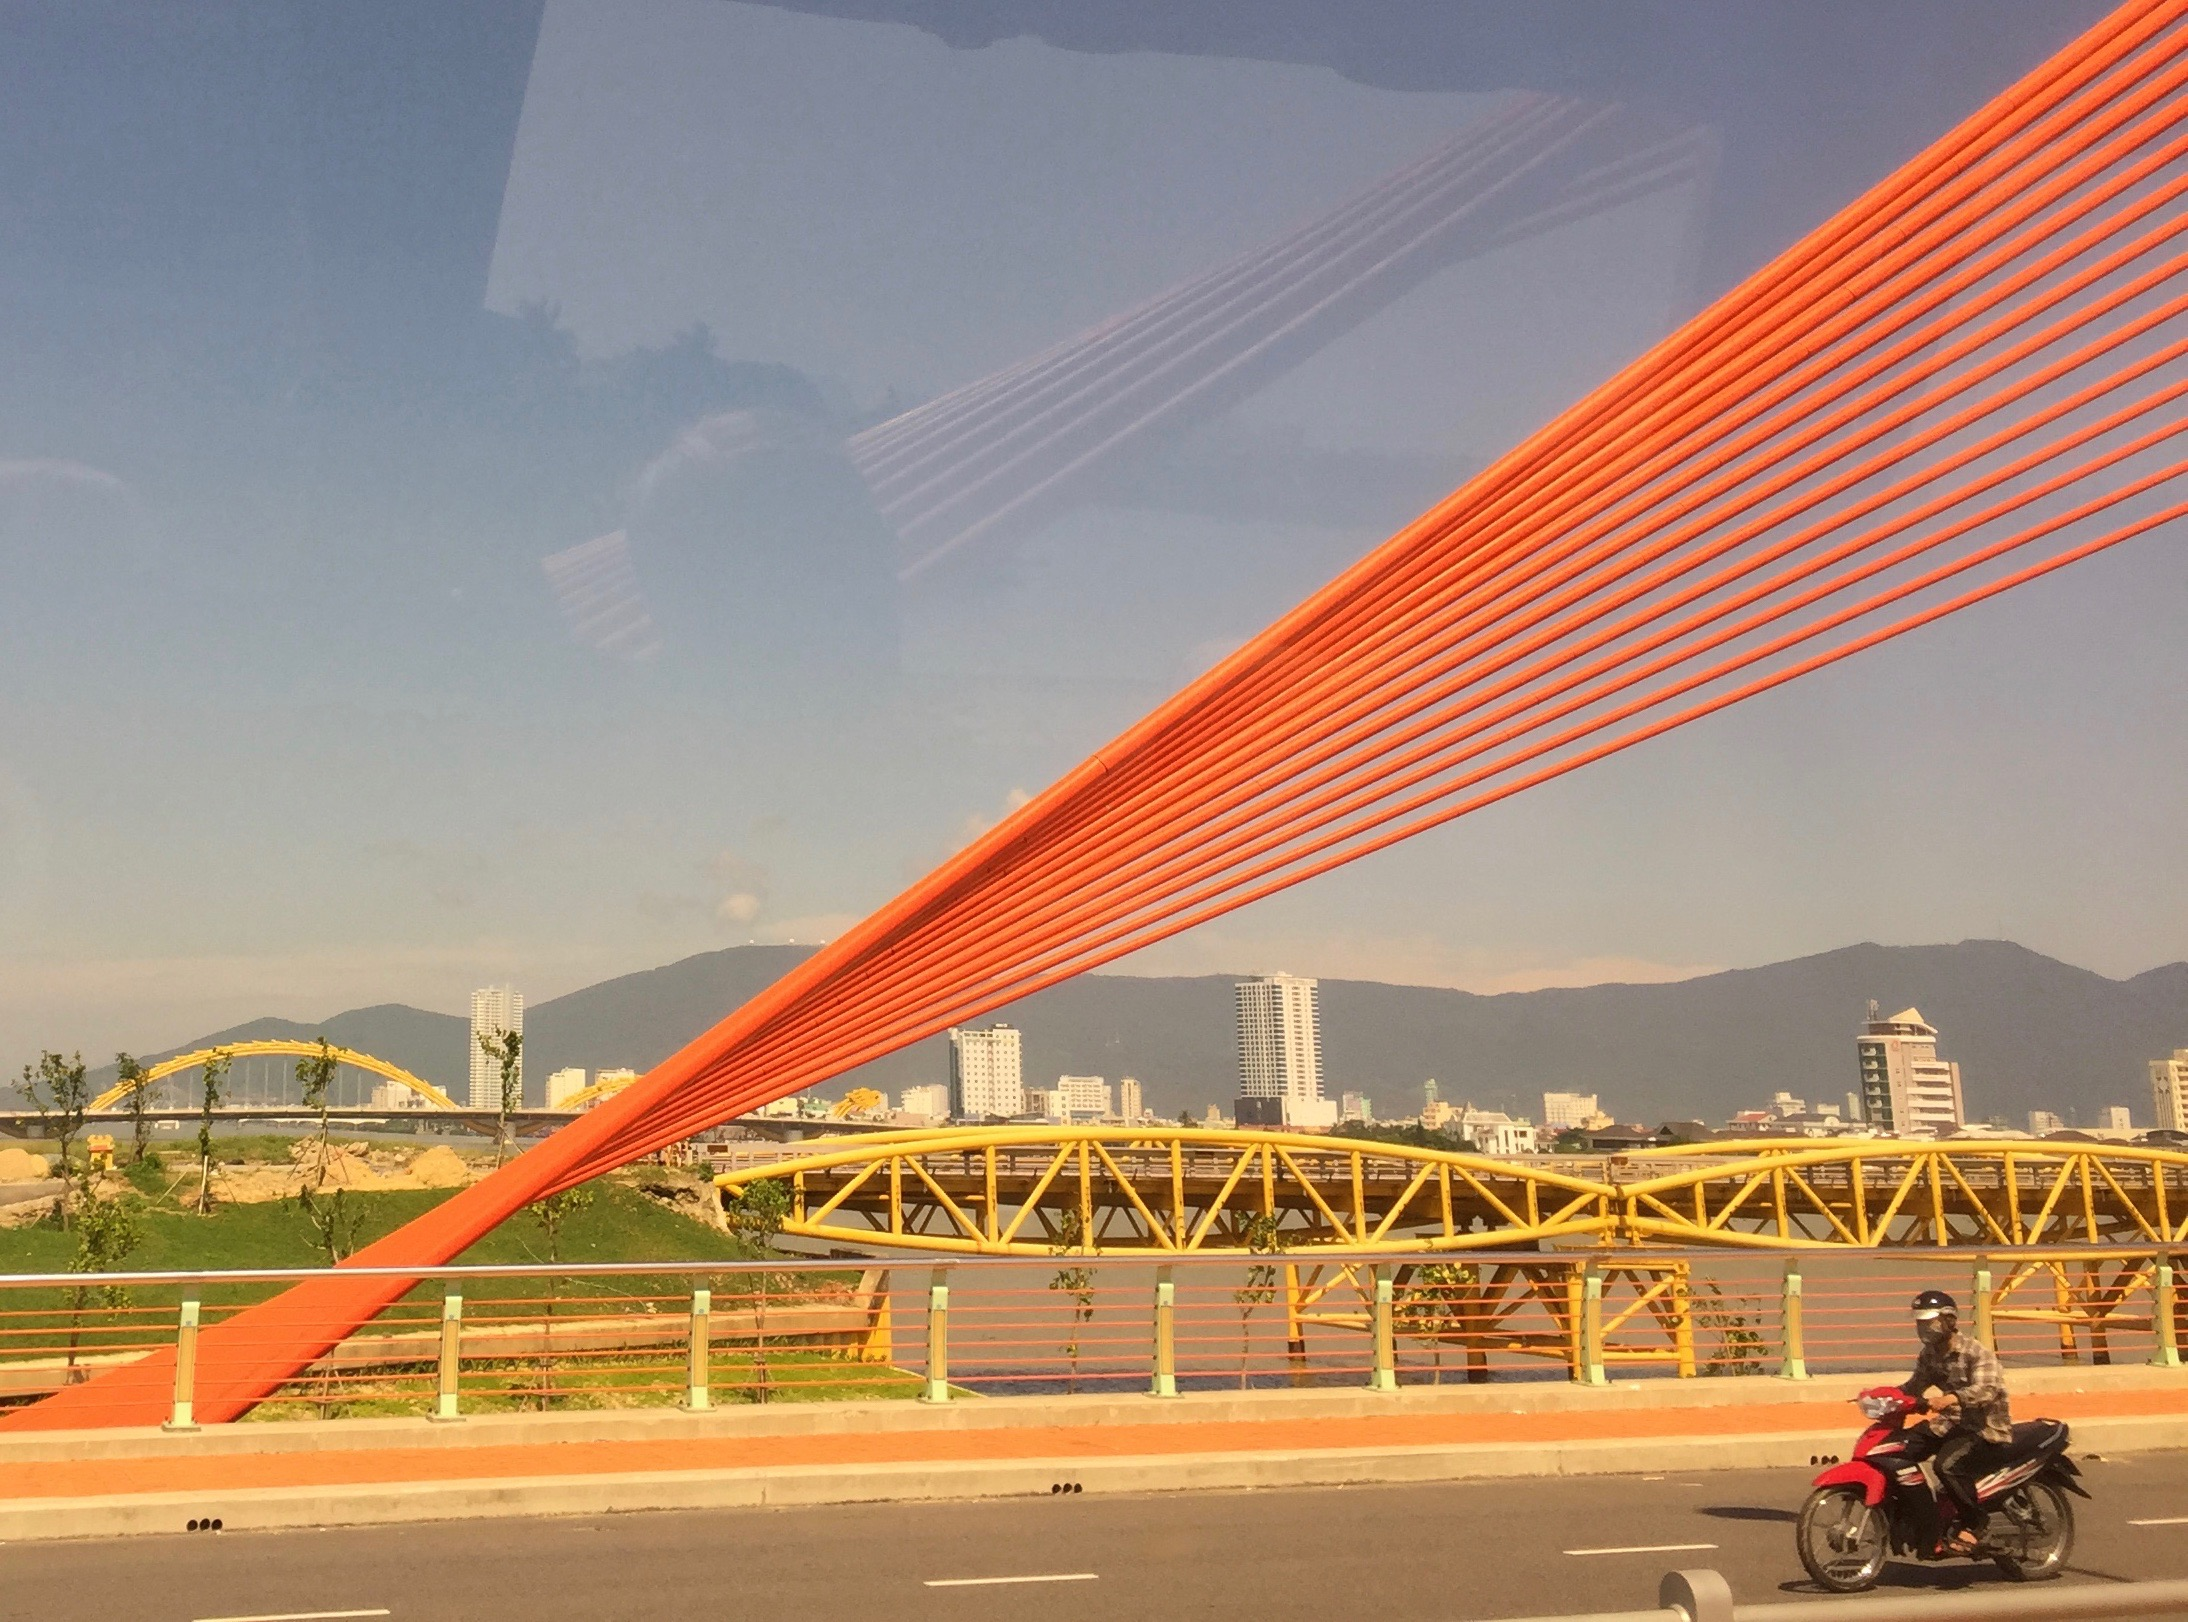 Crossing a bridge into Da Nang, now highly developed with beach resorts.